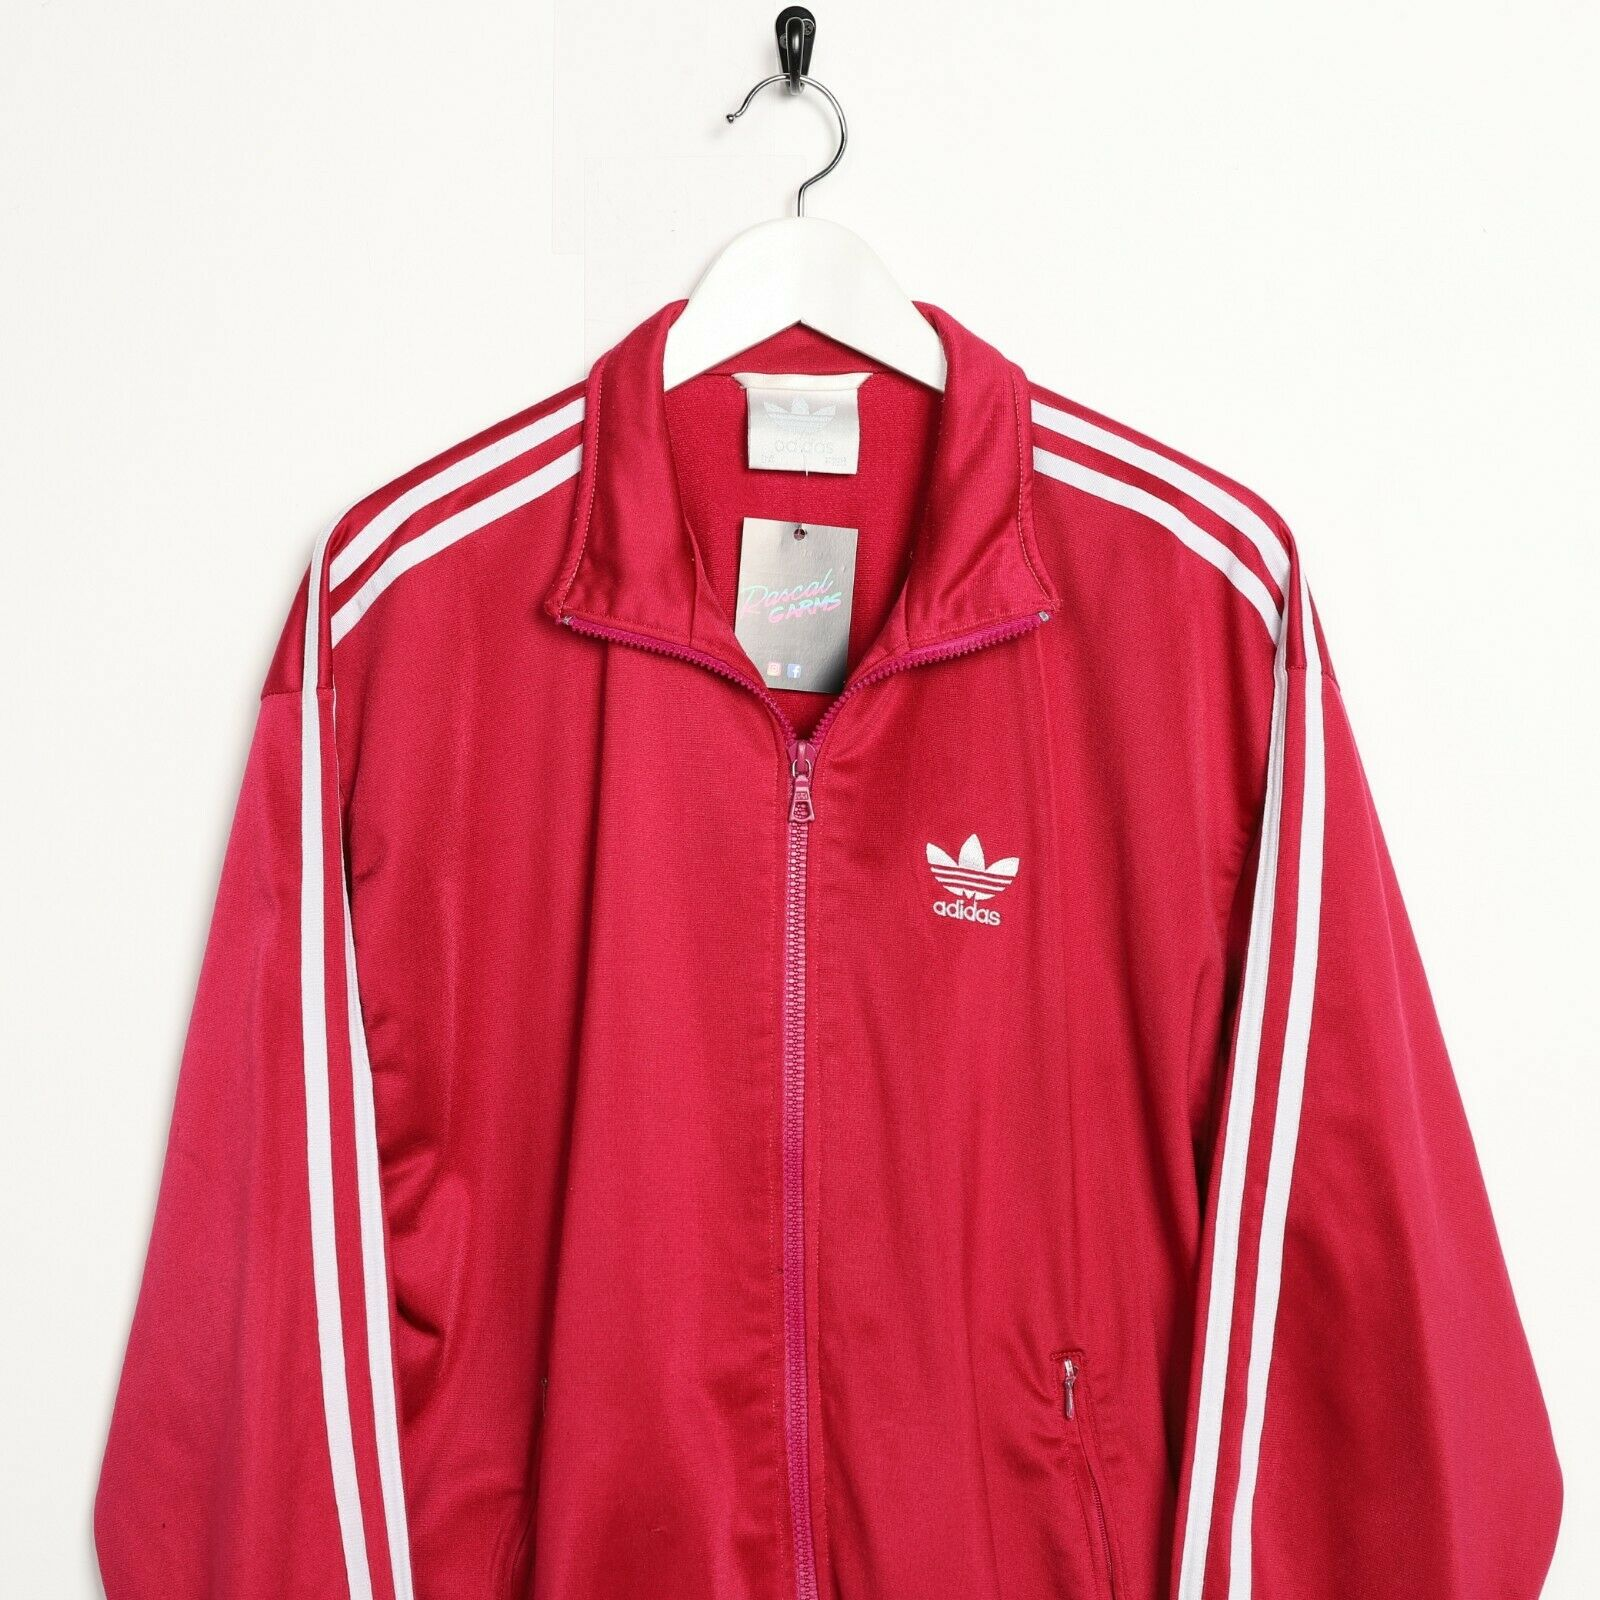 Vintage 80s ADIDAS Small Logo Track Top Jacket Pink Large L